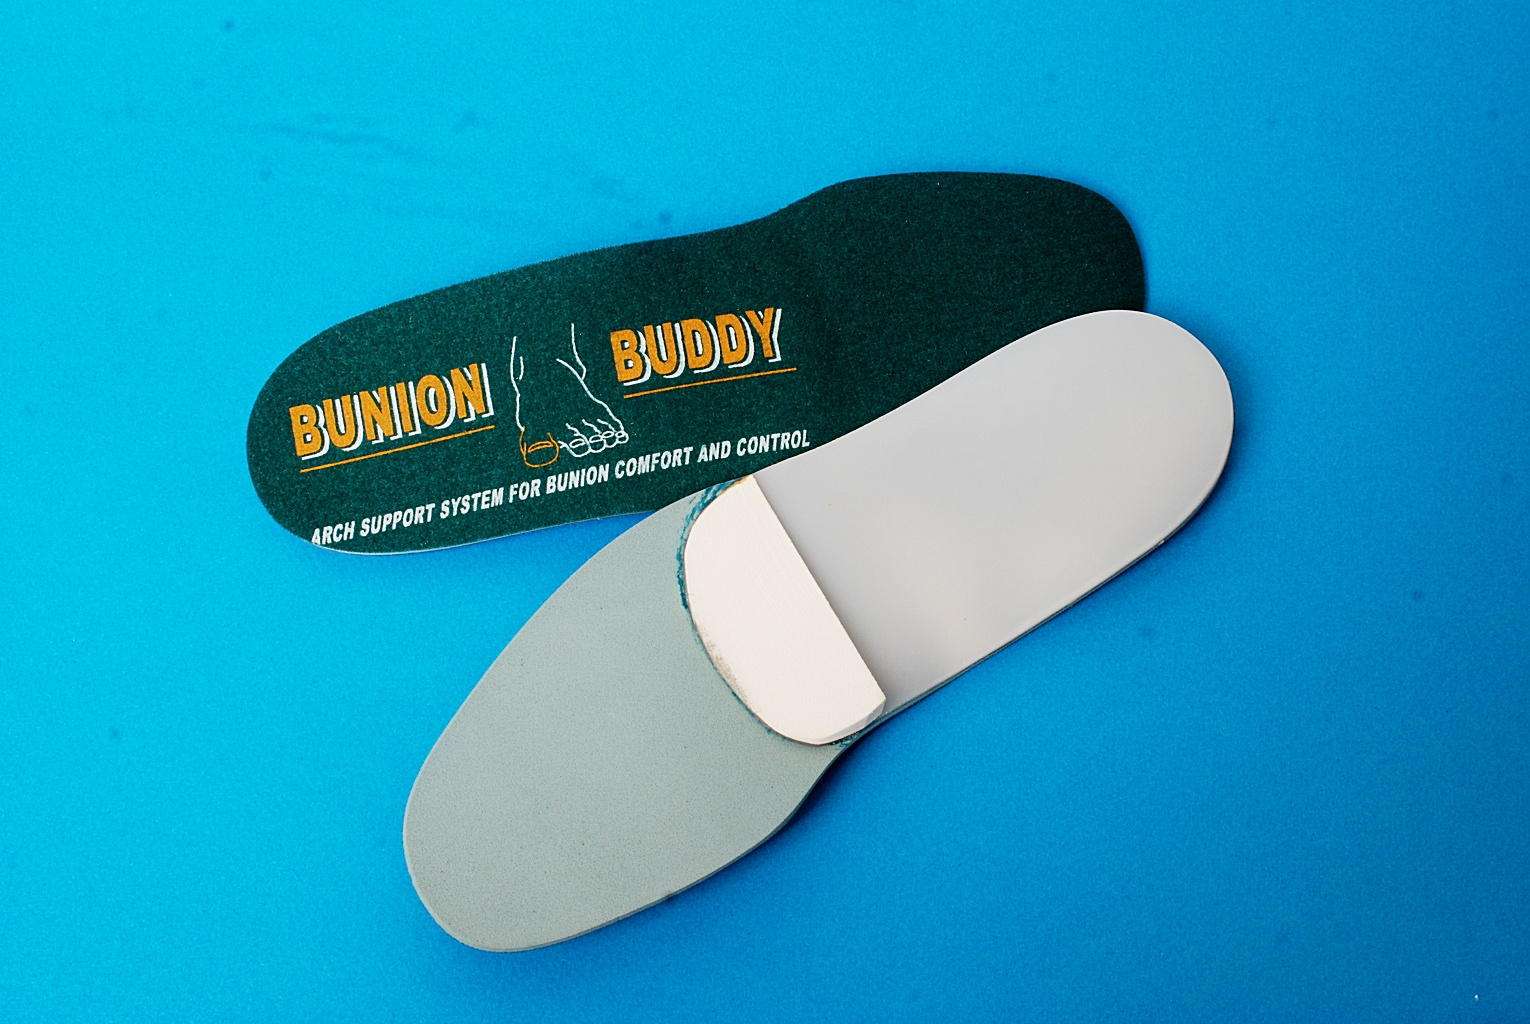 Bunion Buddy Bunion Orthotics, Arch support system for bunion comfort and control.